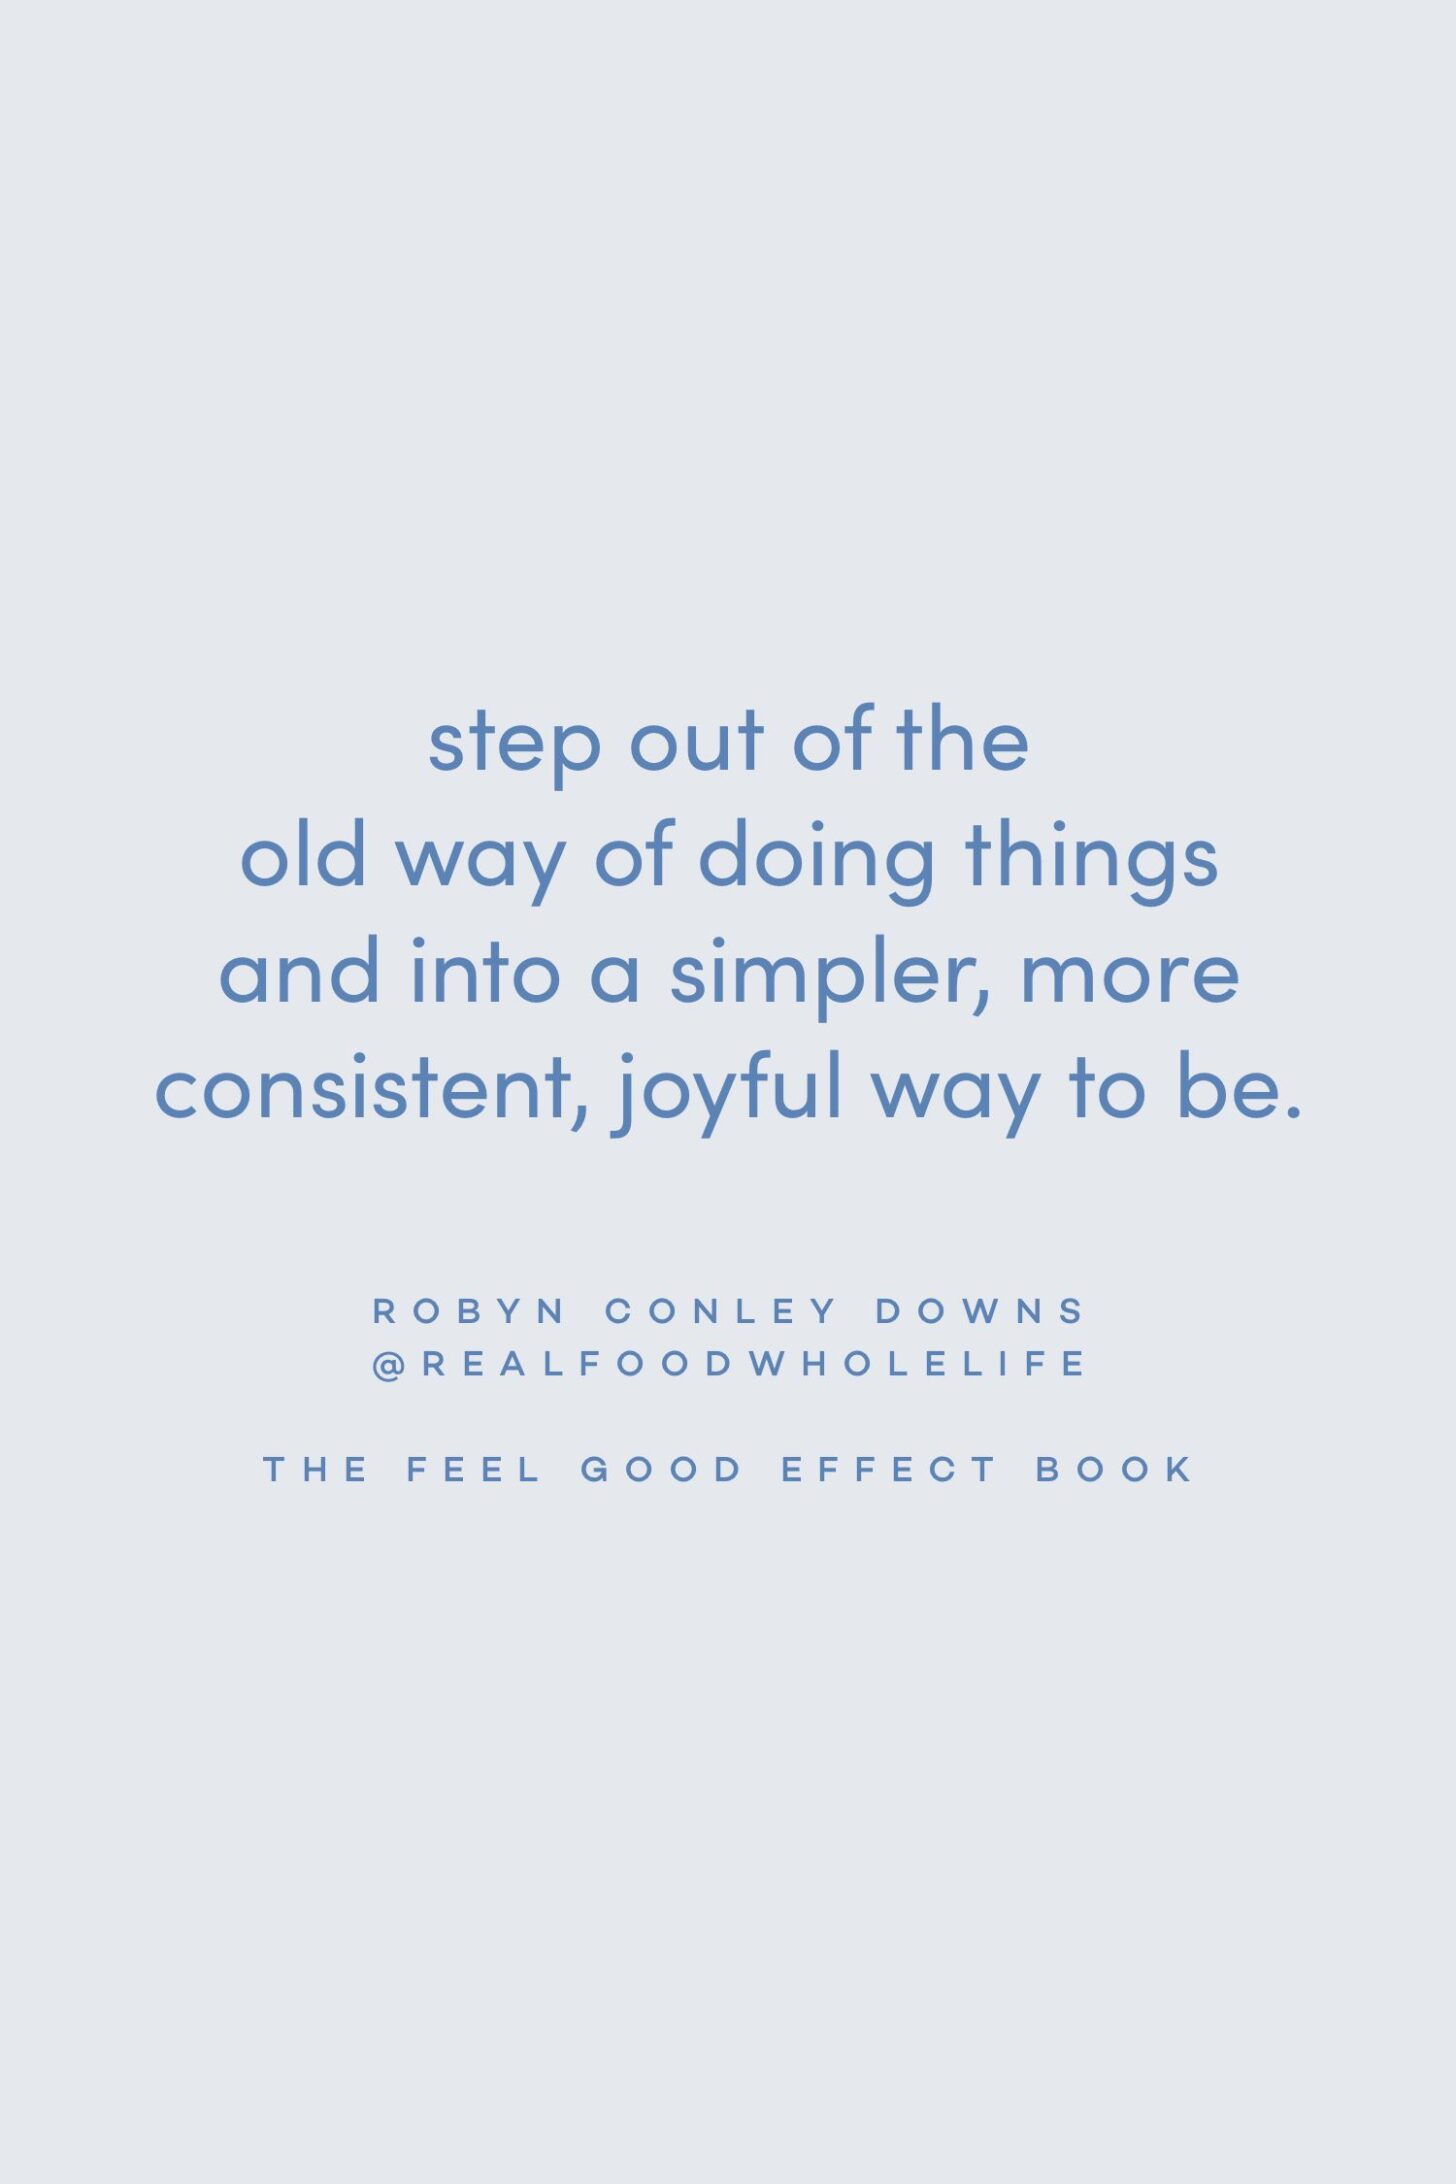 Quote on stepping into joy by Robyn Conley Downs on the Feel Good Effect Podcast #realfoodwholelife #feelgoodeffectpodcast #motivationalquote #inspirationalquote #positivityquote #goalsettingquote #productivityquote #meaningfulquote  #wellnessquote #gentlequote #perfectionquote #selfcarequote #selfcompassionquote #joyfulquote  #simplifyquote